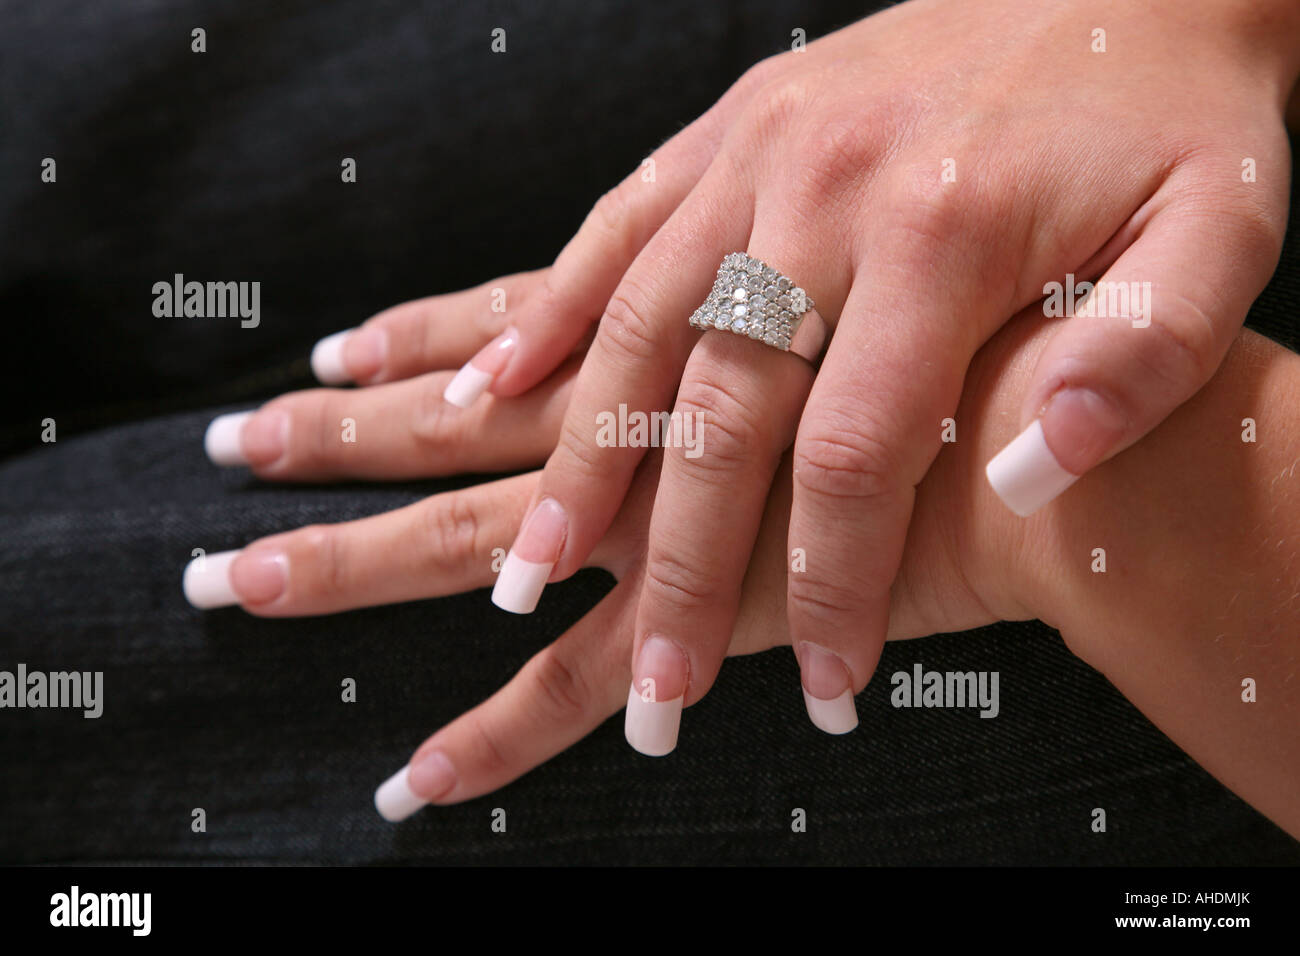 French Nails Stock Photos & French Nails Stock Images - Alamy